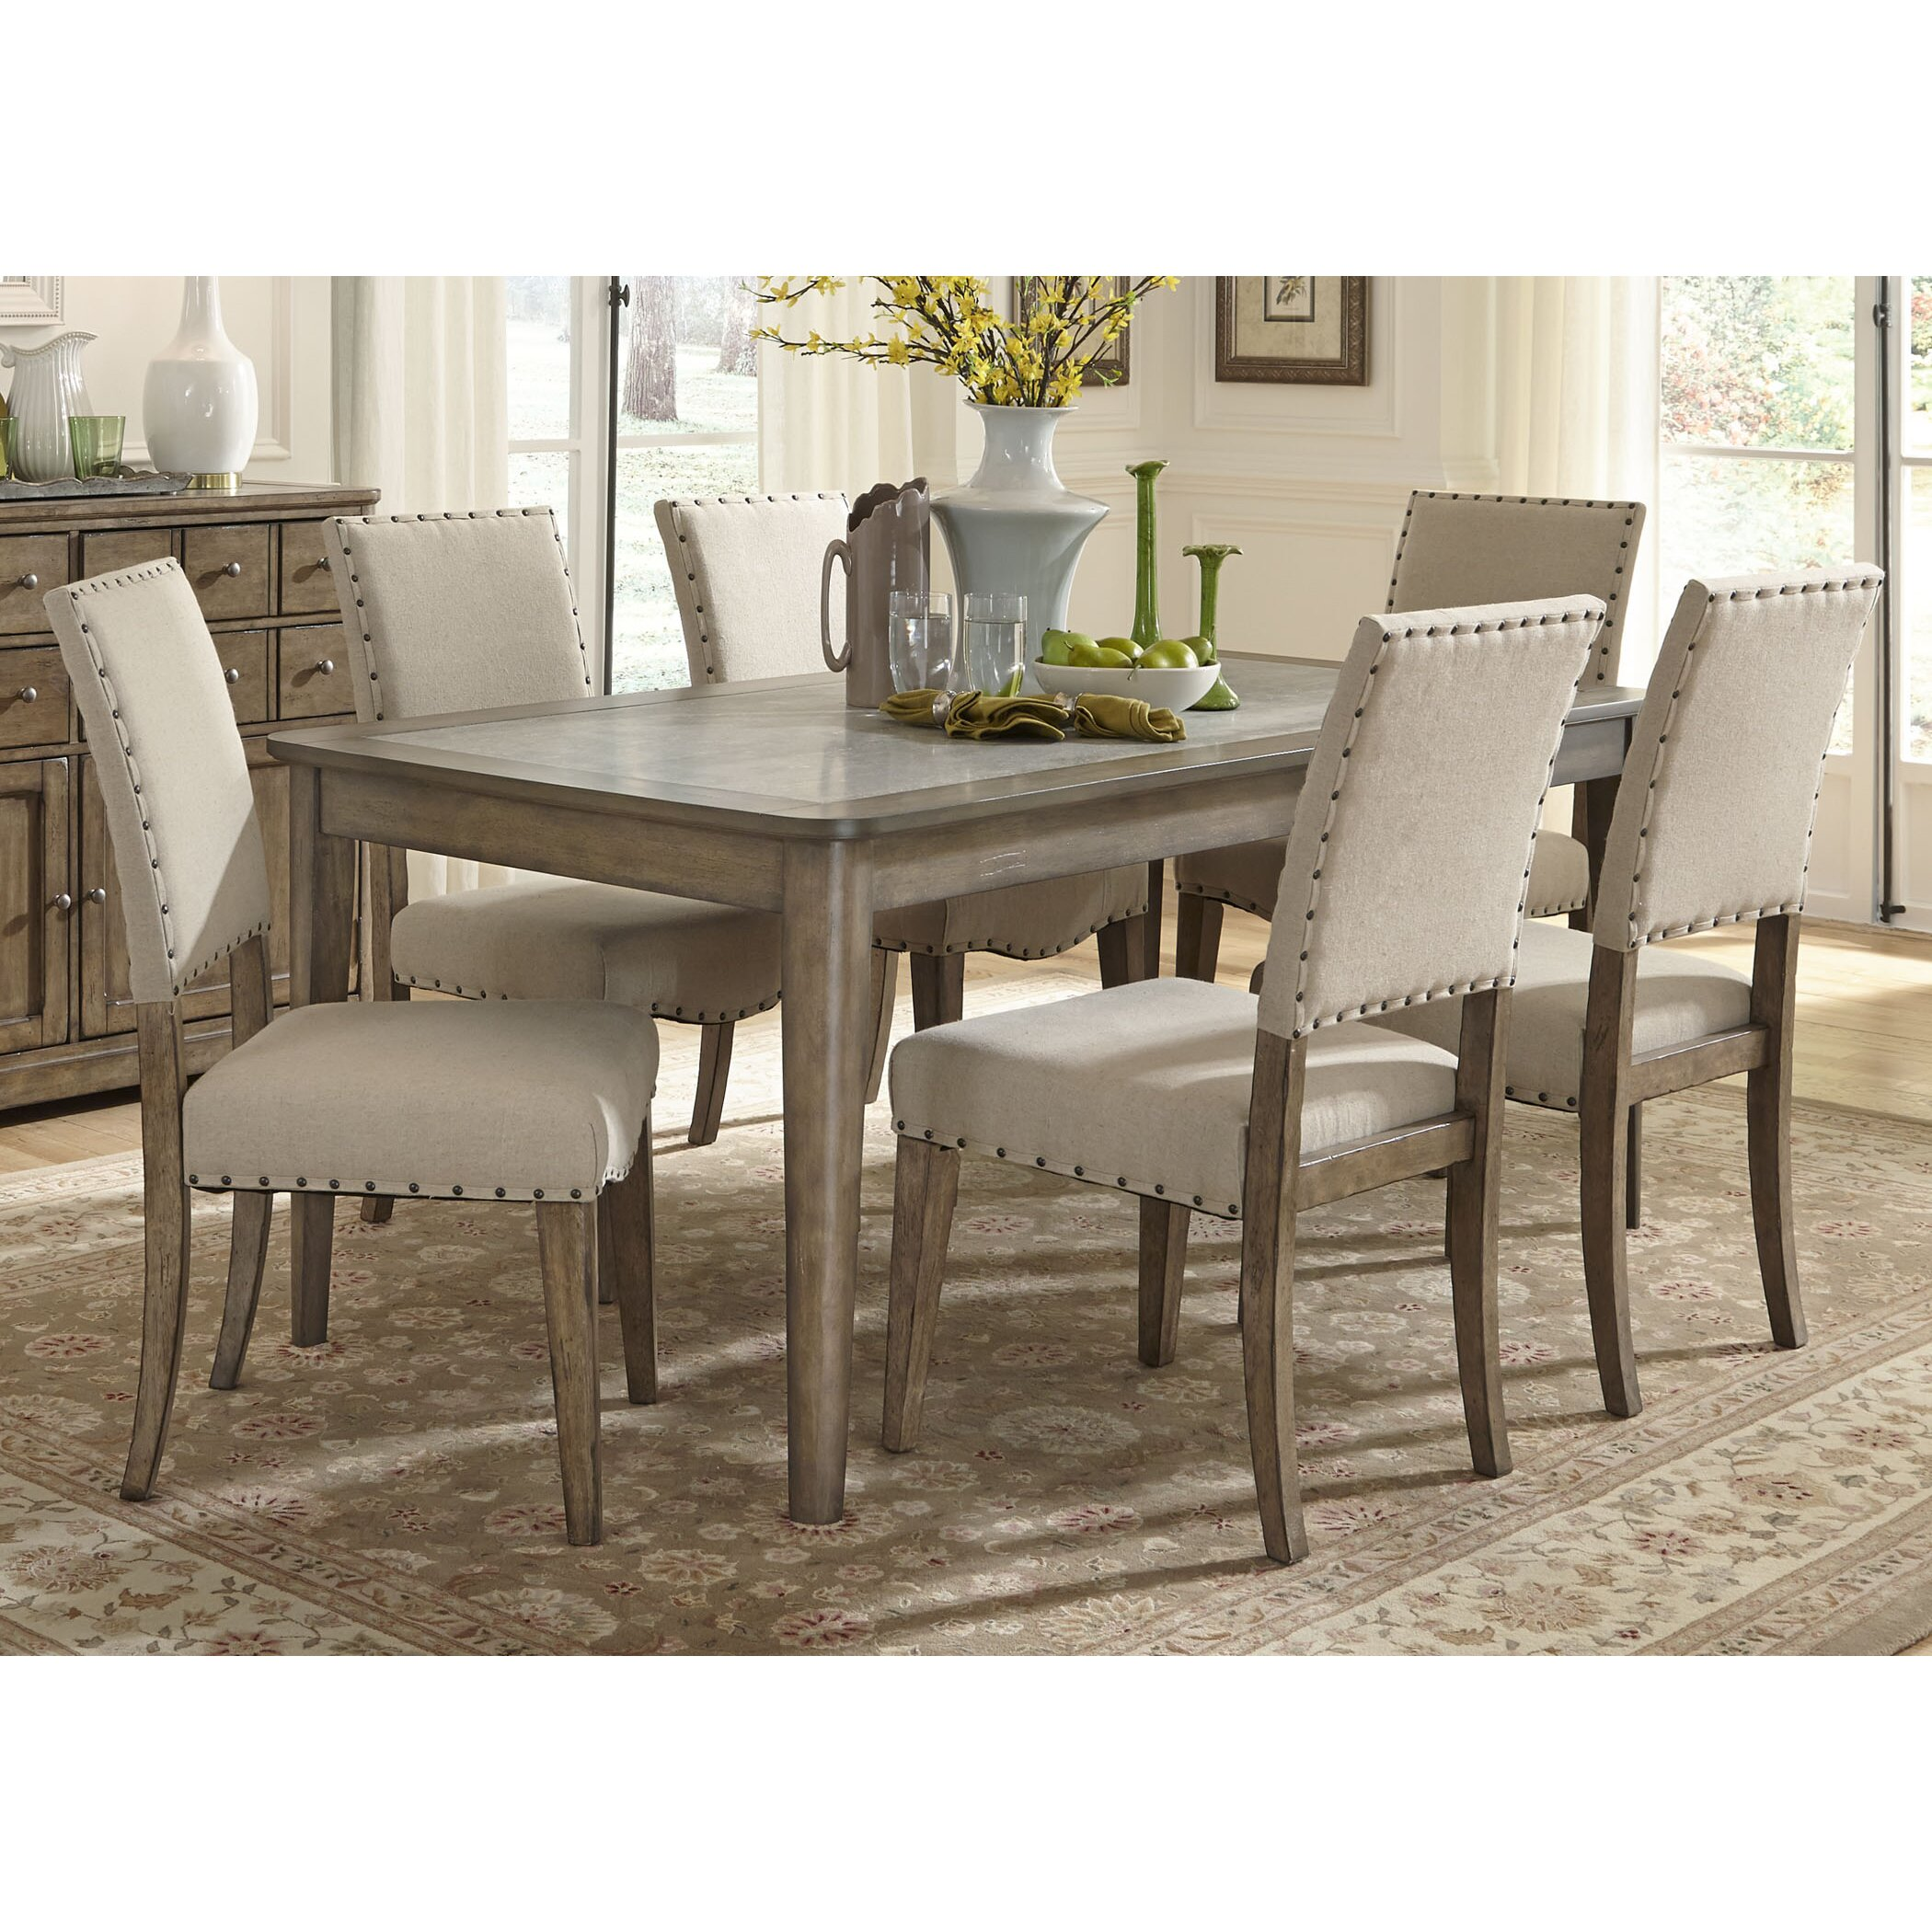 Liberty Furniture 7 Piece Dining Set Amp Reviews Wayfair